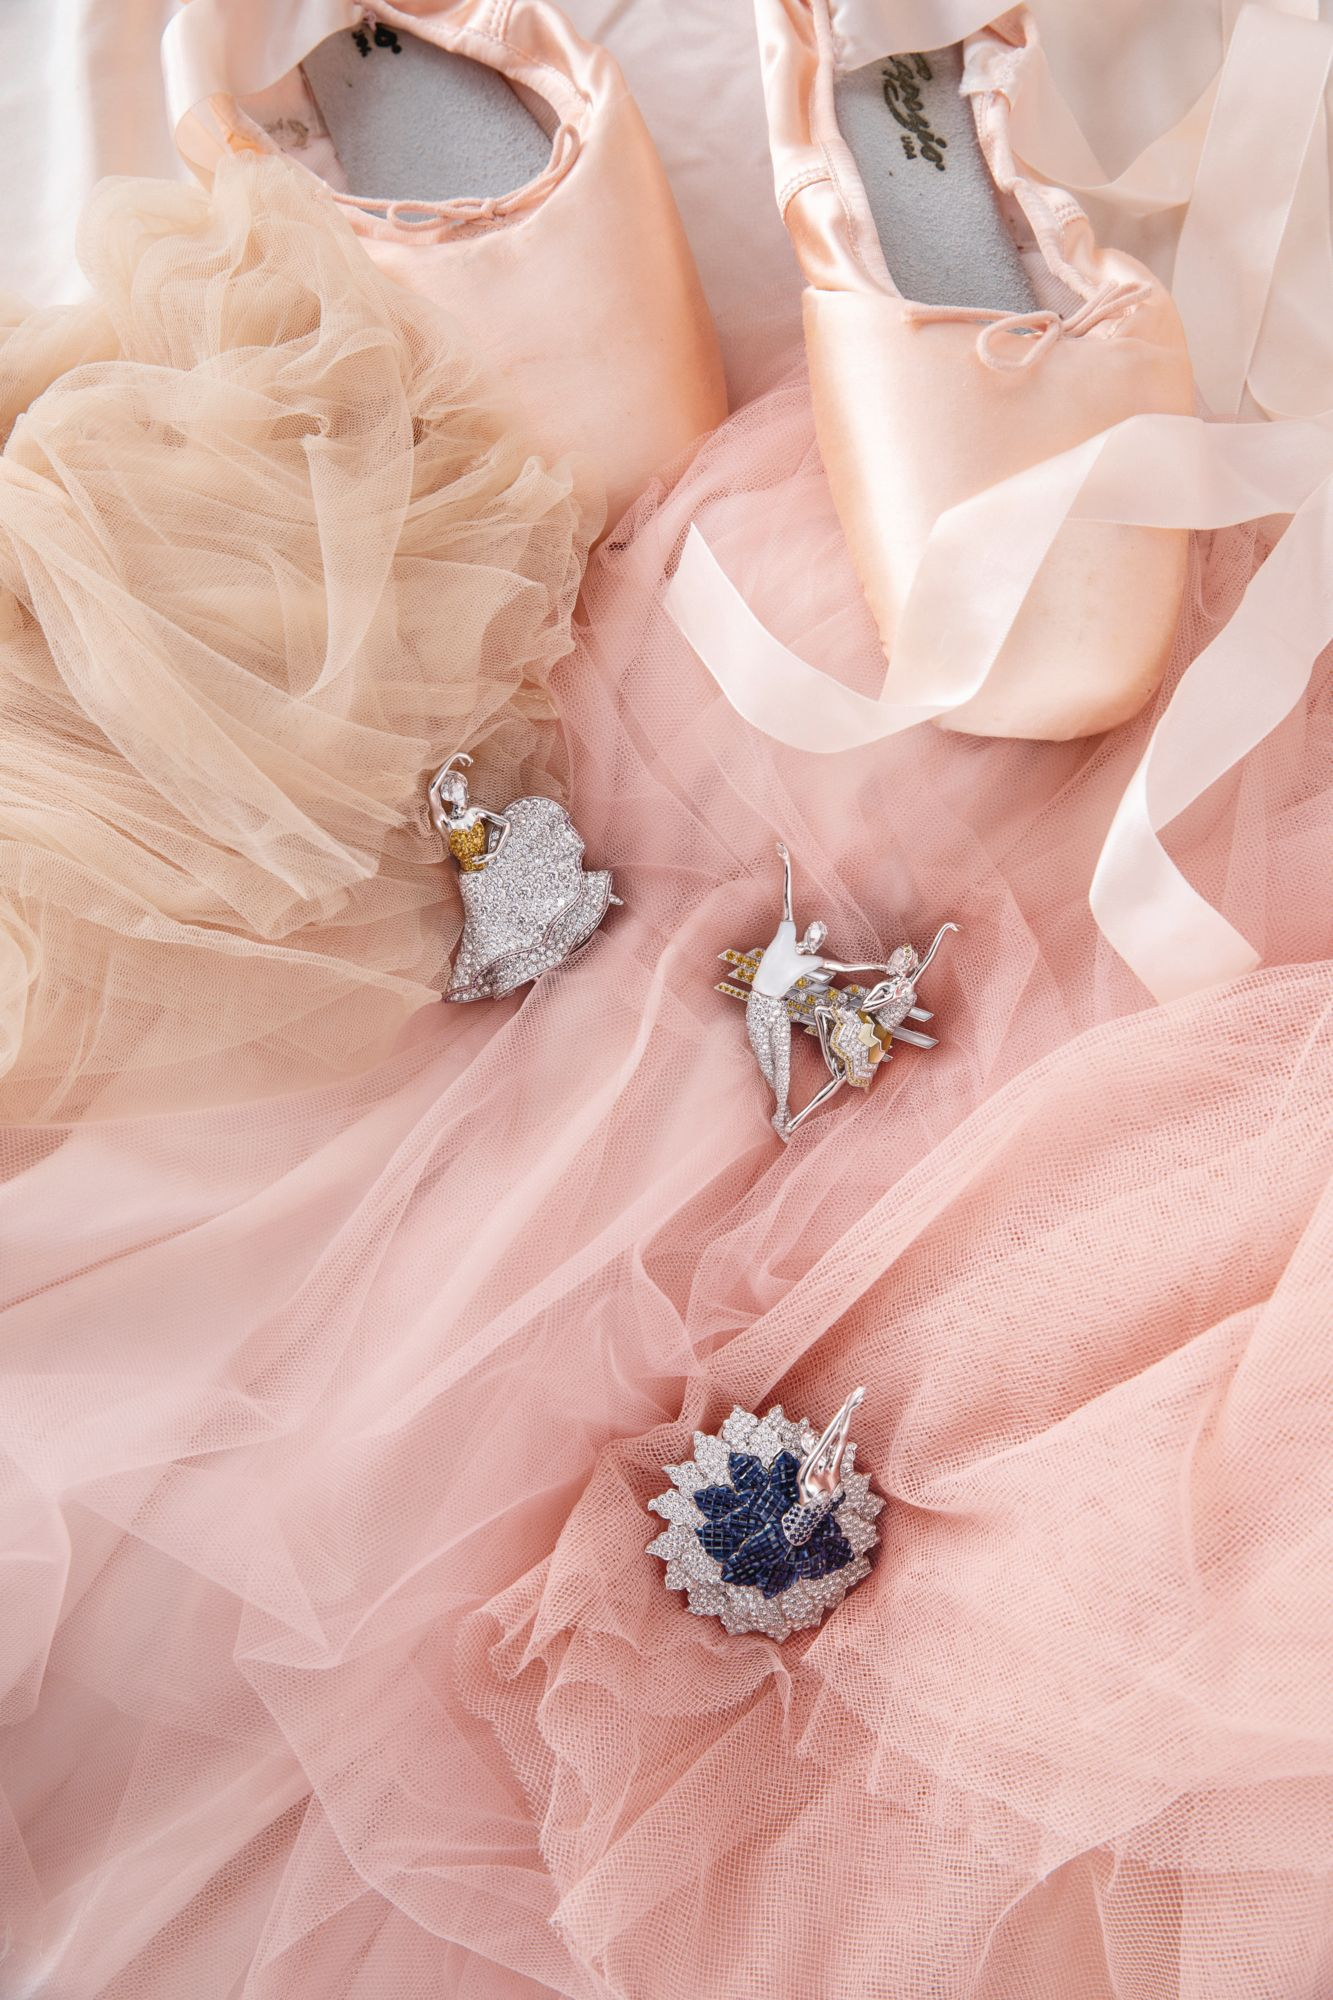 From top: Sylphide ballerina clip in white and yellow gold set with pink and yellow sapphires and diamonds; Pas de Deux transformable clip in white gold set with yellow sapphires, white and golden mother-of-pearl and diamonds; Sacre du Printemps ballerina clip in white and rose gold set with sapphires and diamonds, all by Van Cleef & Arpels (Image: Affa Chan/Tatler Hong Kong)